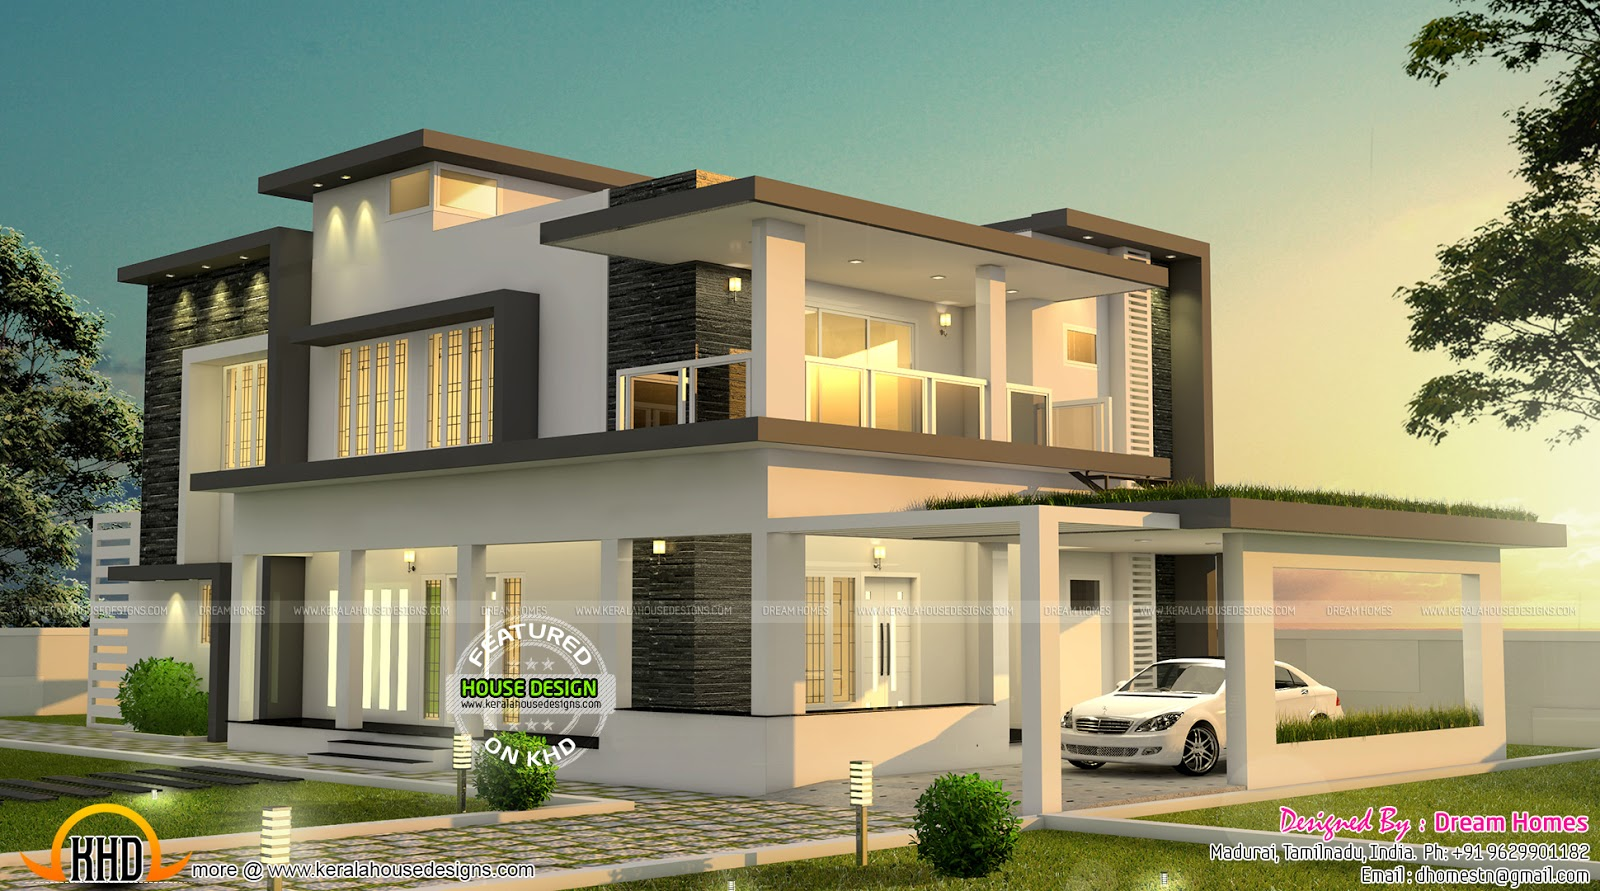 Beautiful modern house in tamilnadu kerala home design and floor plans New house design